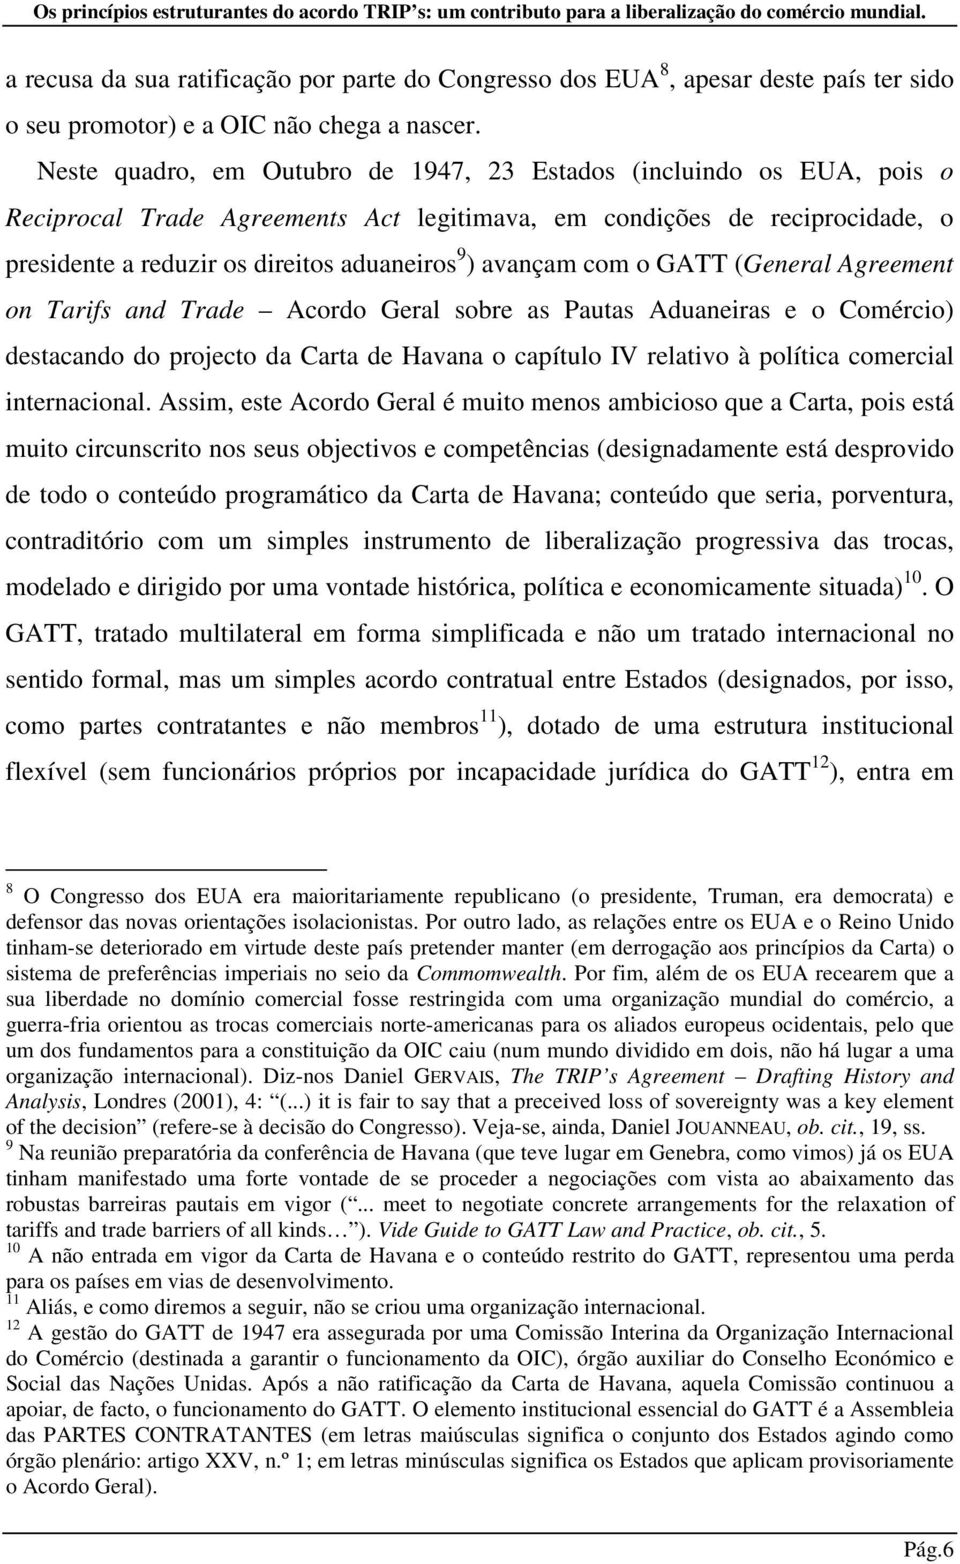 avançam com o GATT (General Agreement on Tarifs and Trade Acordo Geral sobre as Pautas Aduaneiras e o Comércio) destacando do projecto da Carta de Havana o capítulo IV relativo à política comercial